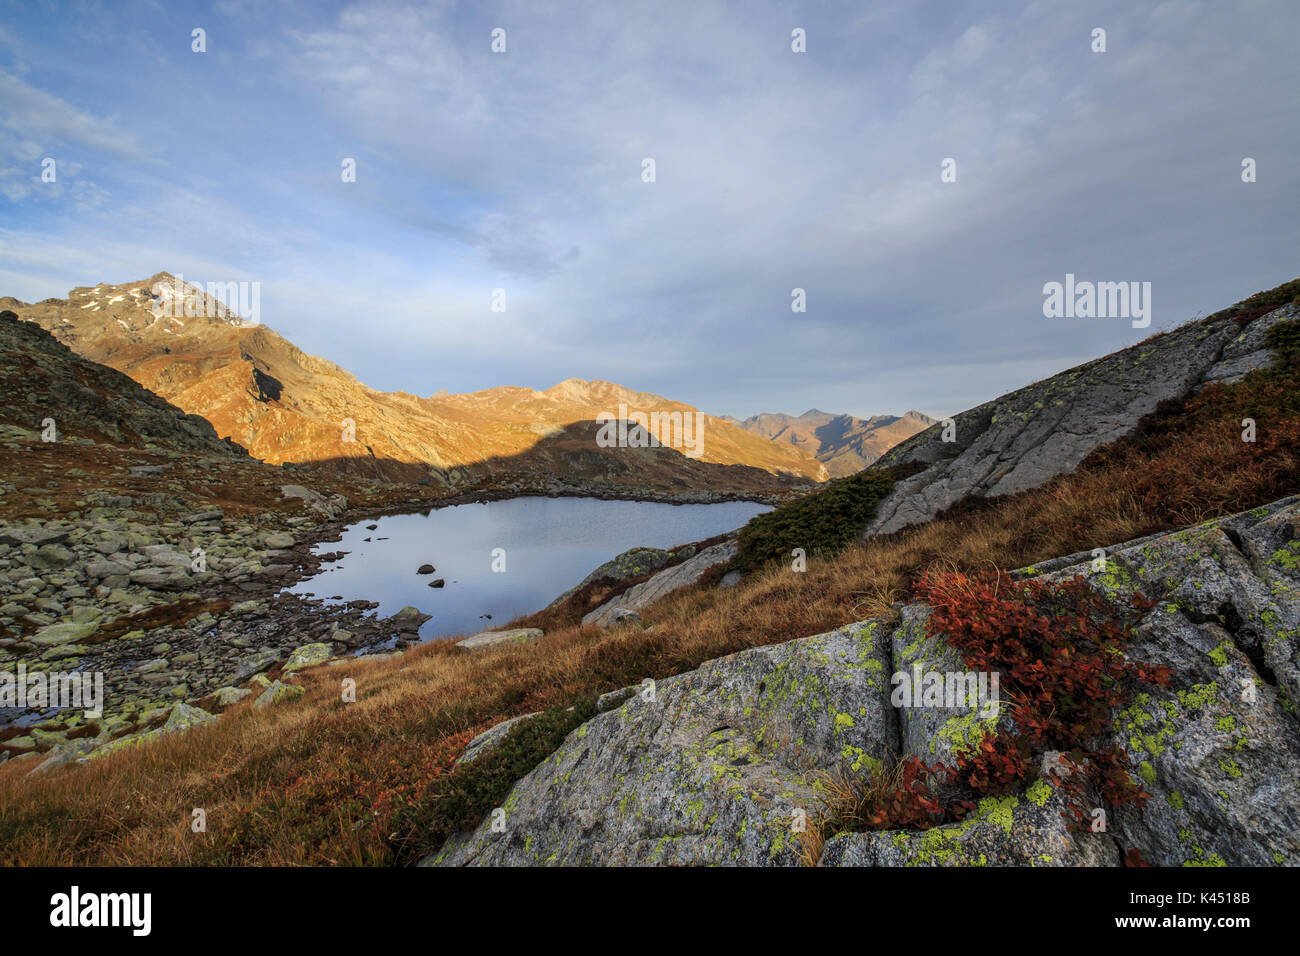 Peak Tambò and Lake Bergsee at dawn Chiavenna Valley Spluga Valley Switzerland Europe - Stock Image